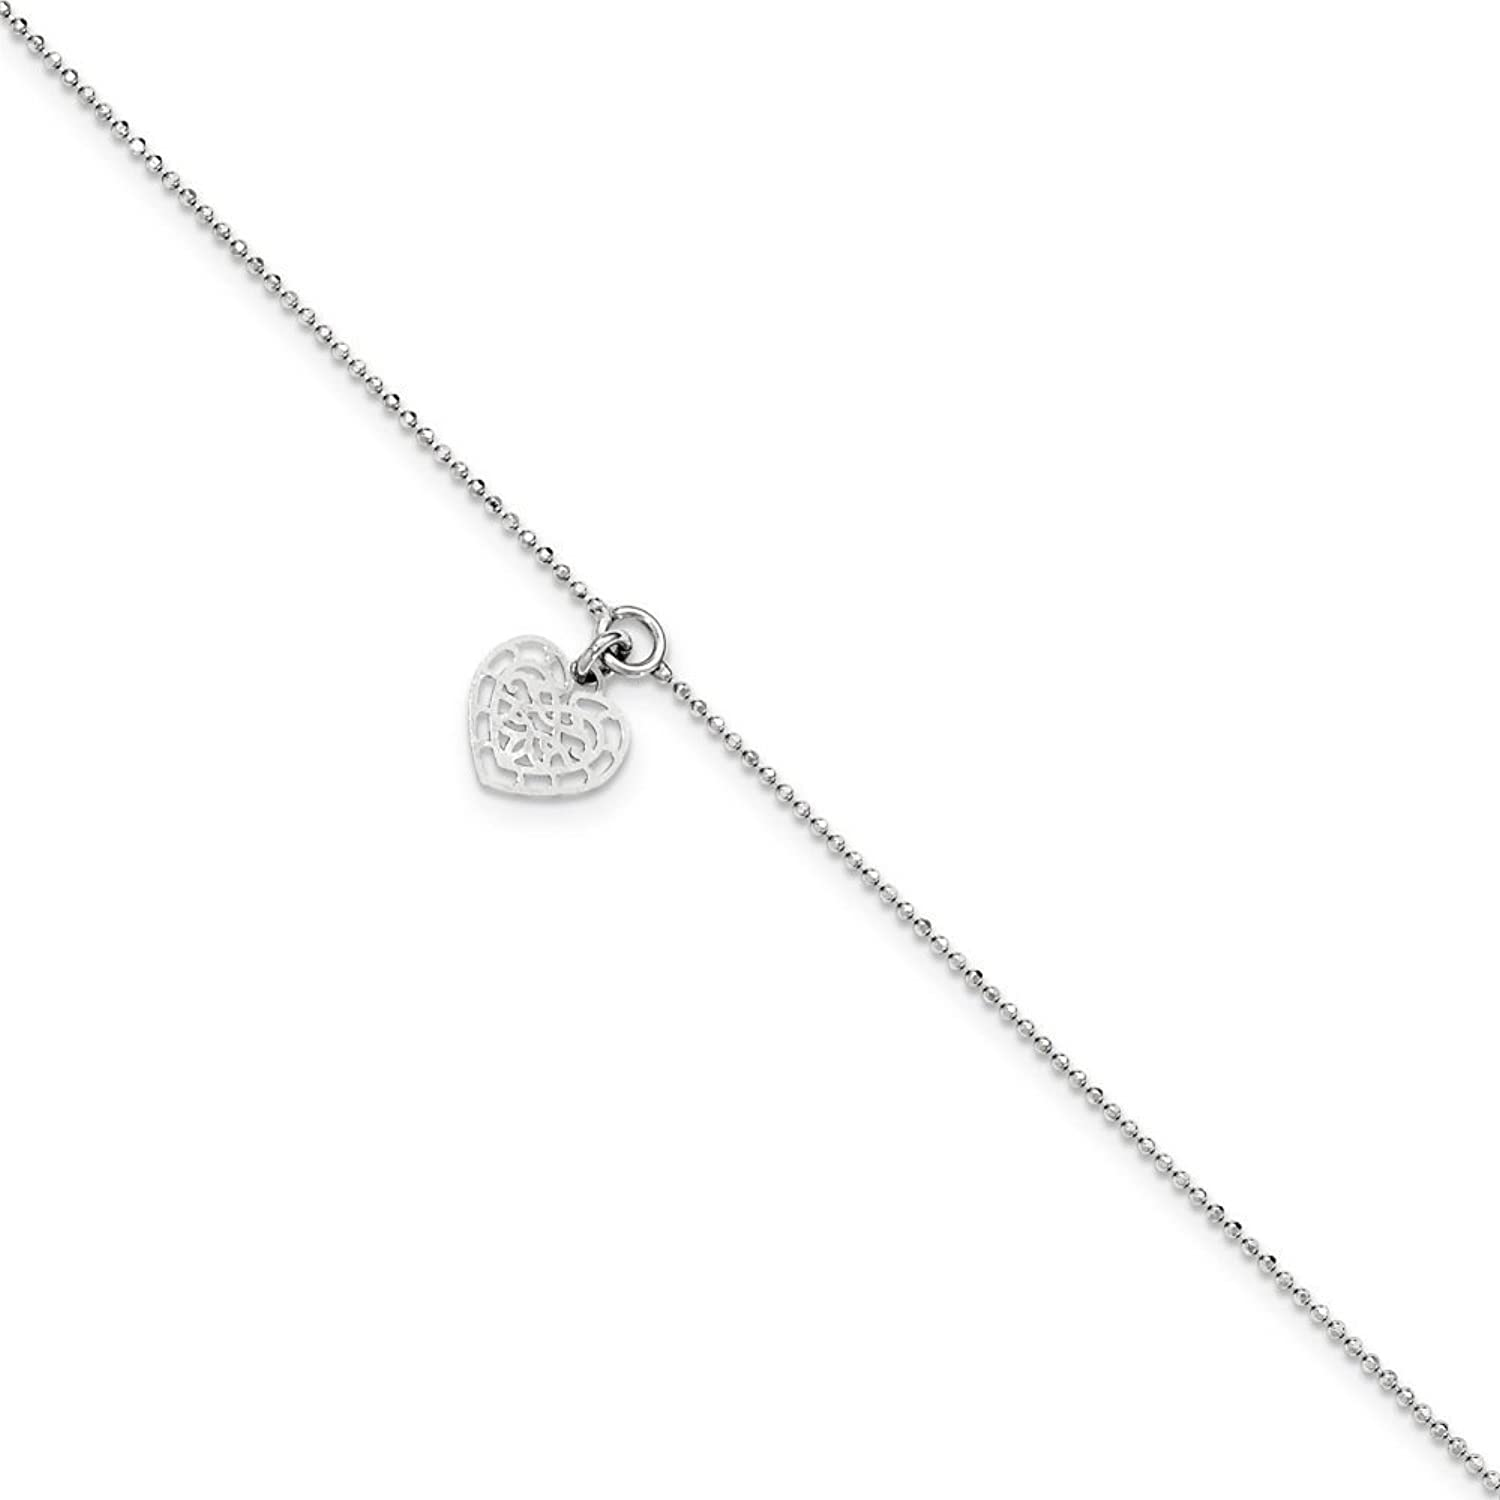 .925 Sterling Silver 1.00MM Heart Charm Anklet Bracelet, 10 Inches